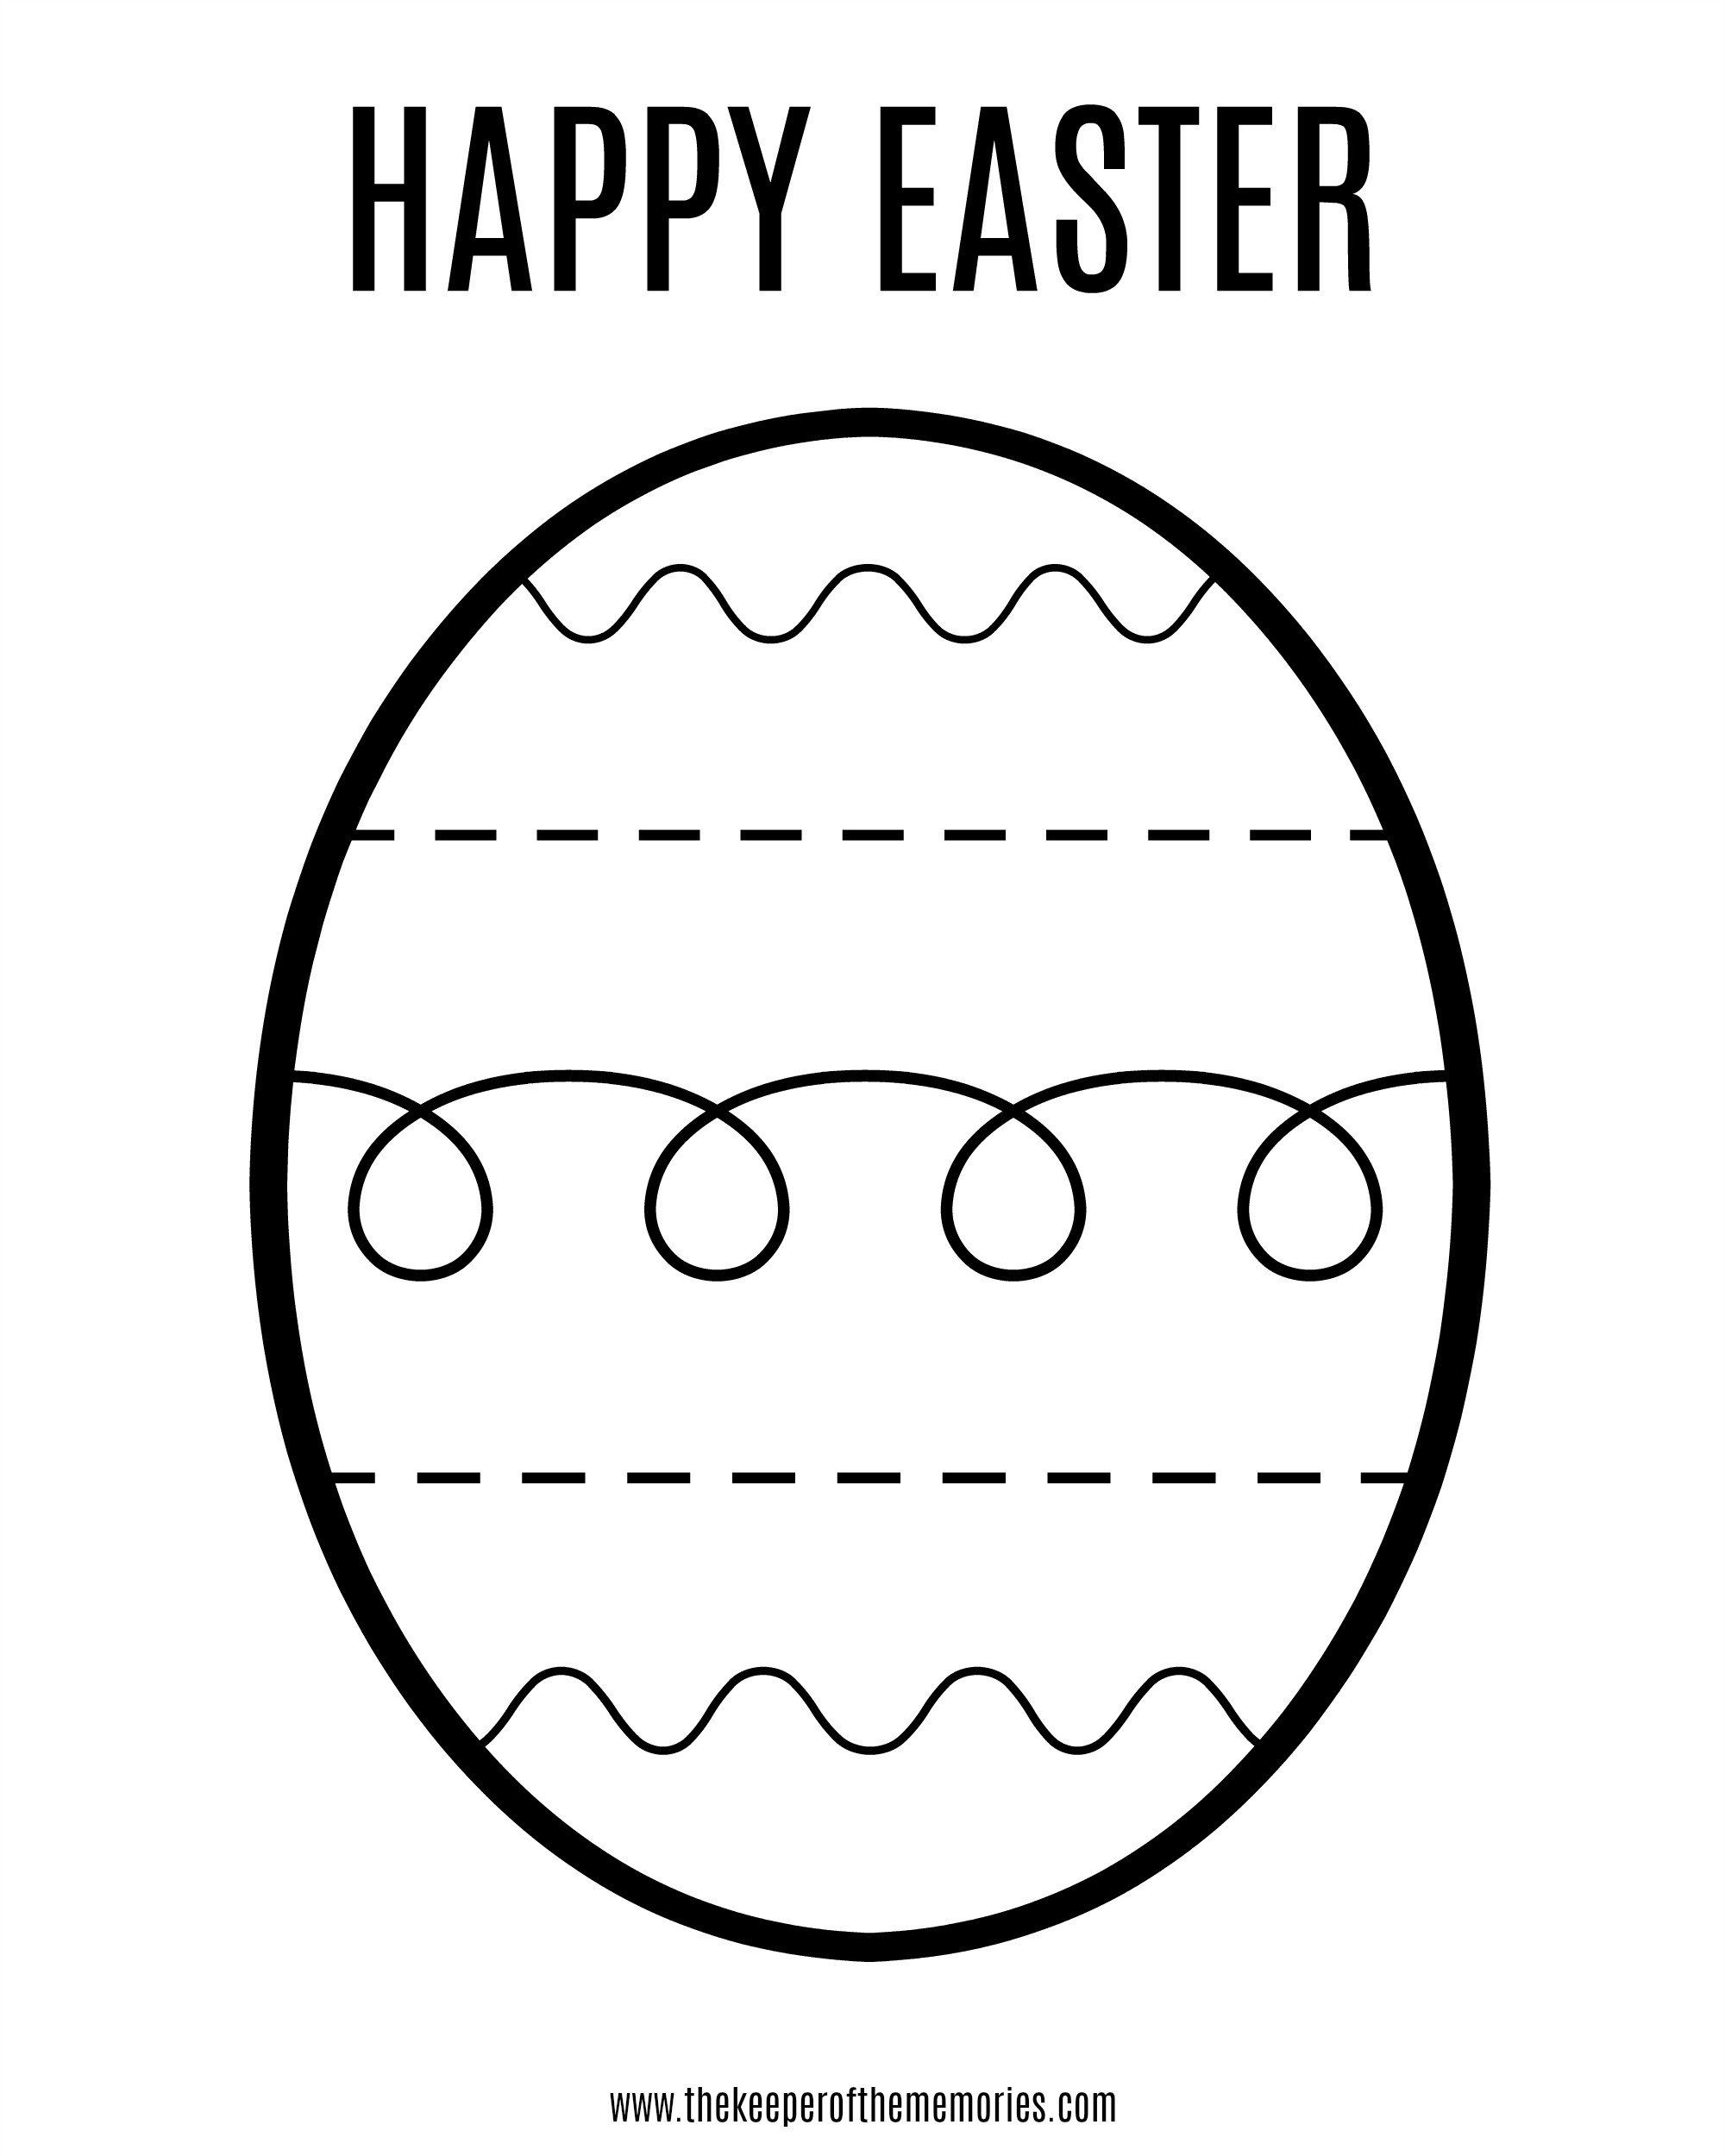 Coloring Pages For Toddlers To Print Free Printable Easter Coloring Sheet For Lit In 2020 Easter Coloring Pages Printable Easter Coloring Sheets Easter Printables Free